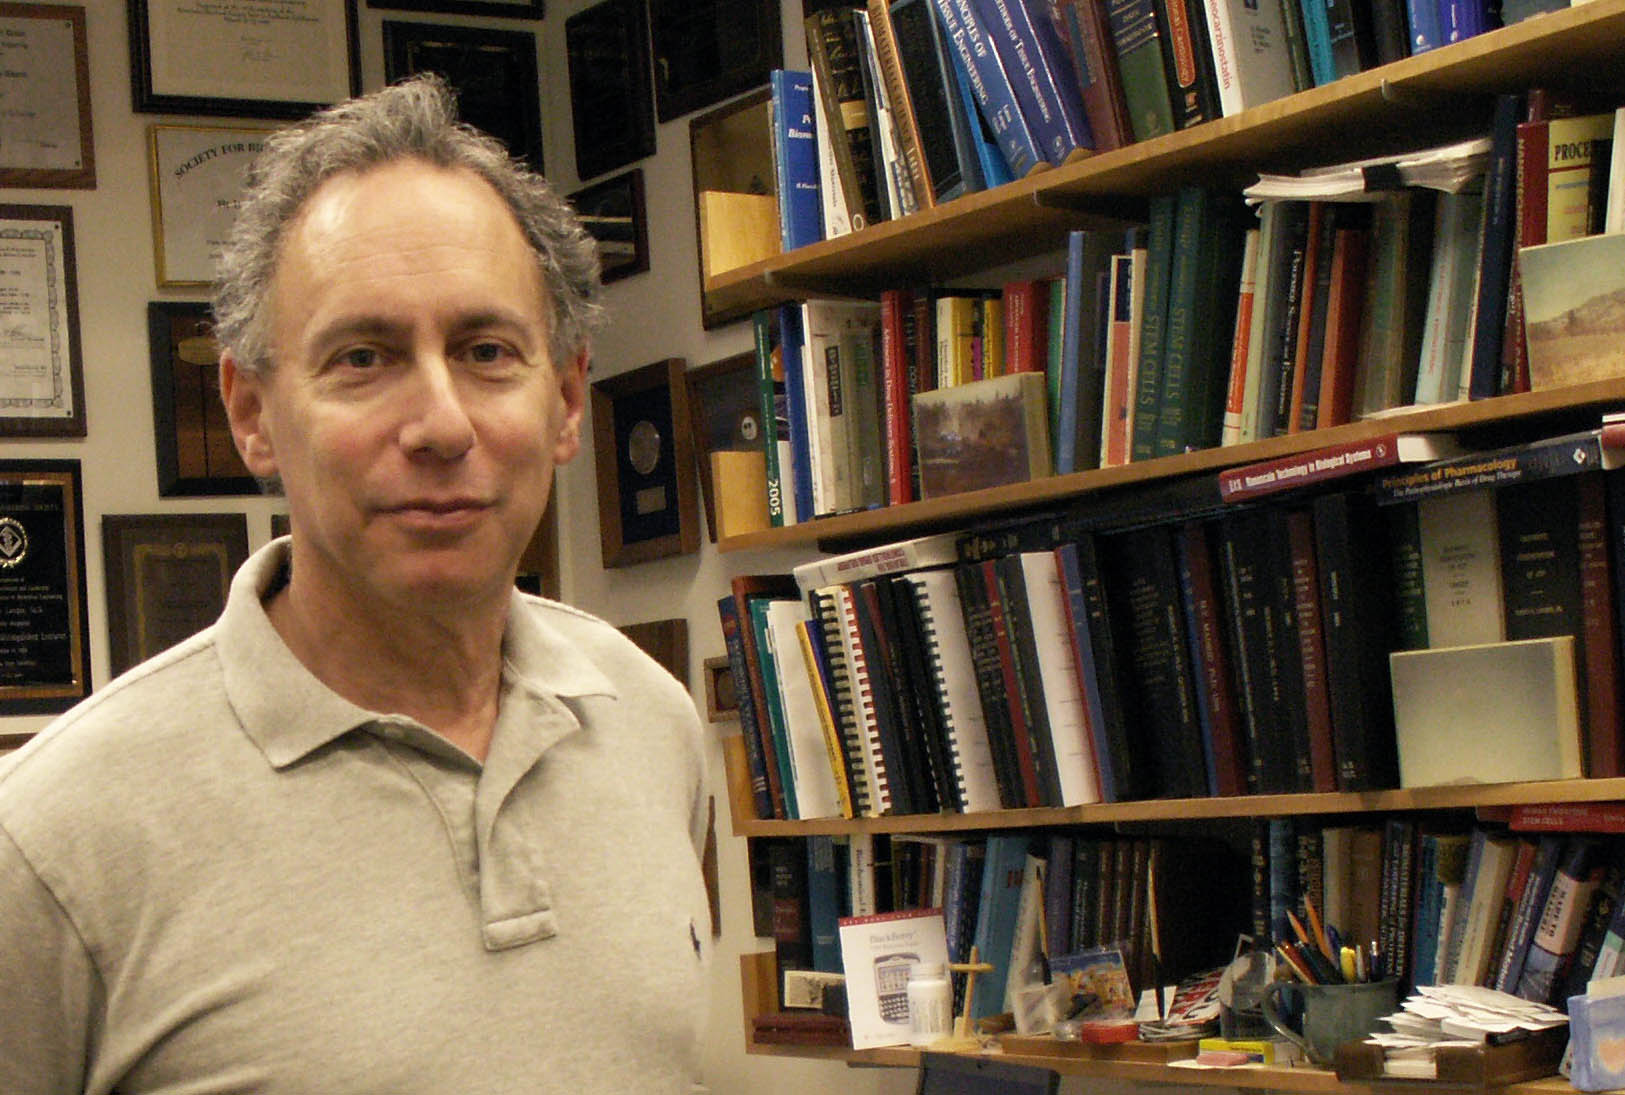 Robert S. Langer – MIT Chemical Engineering